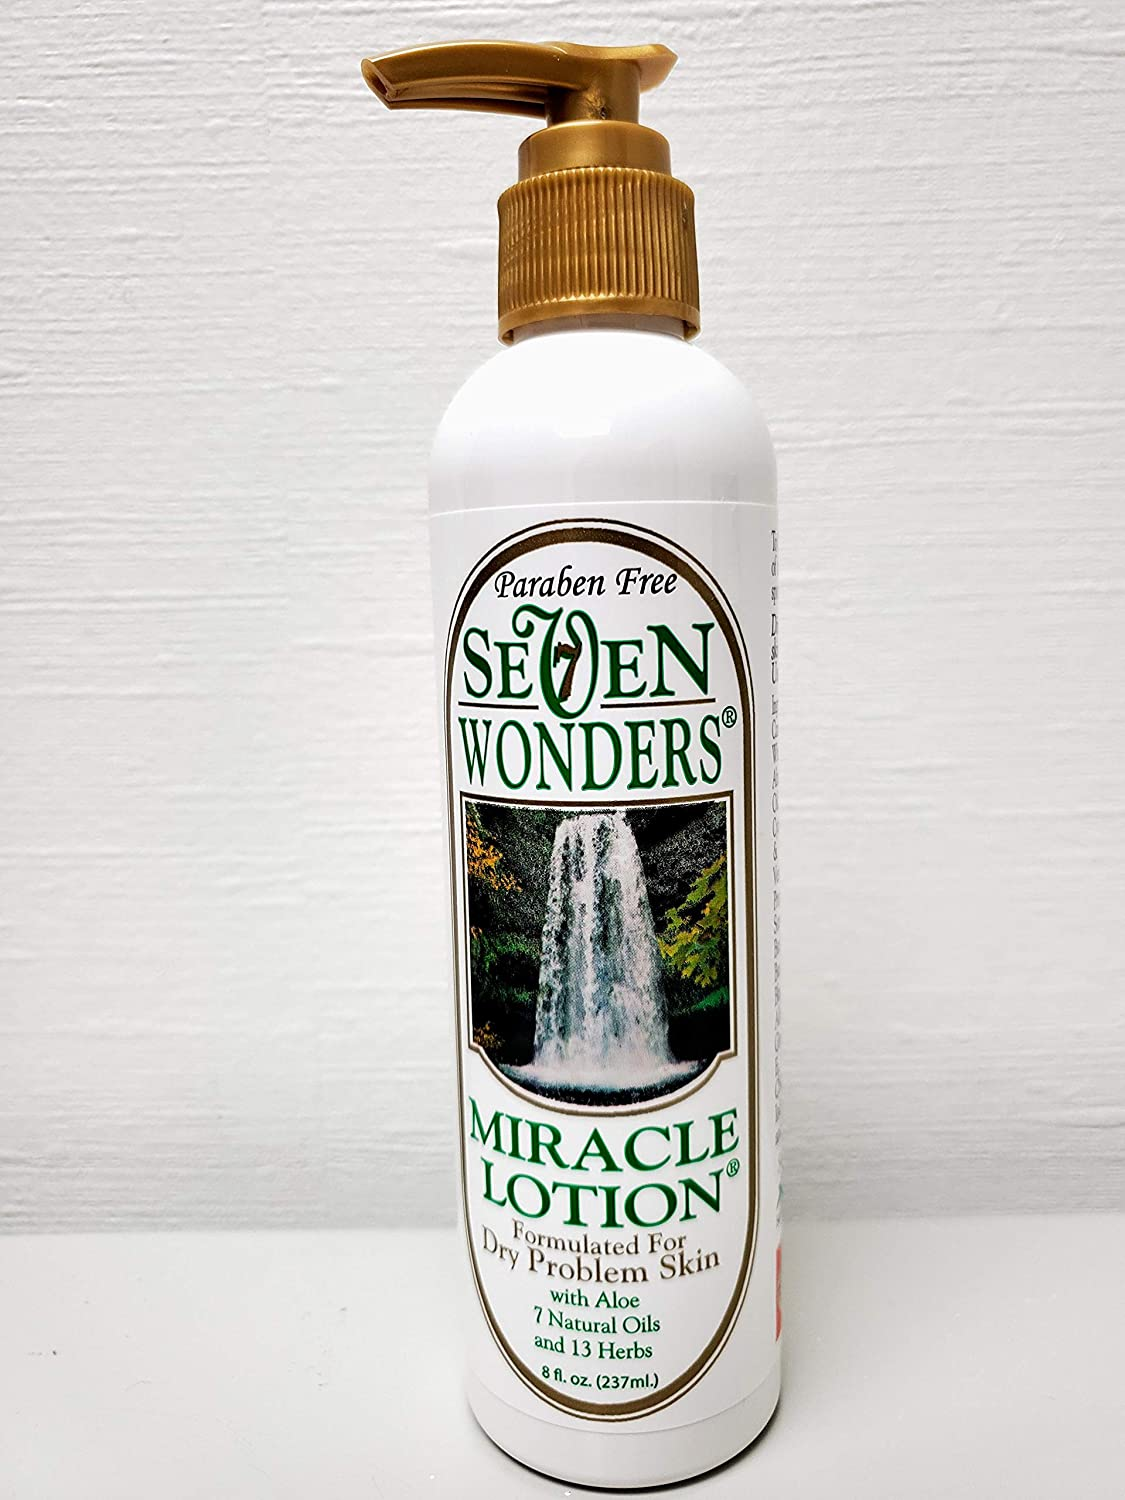 Seven Wonders Miracle Lotion - 7 Oils, 13 Natural Herbal Extracts, Soothing All-Day Body Moisturizer for Dry, Itchy, Irritated Skin